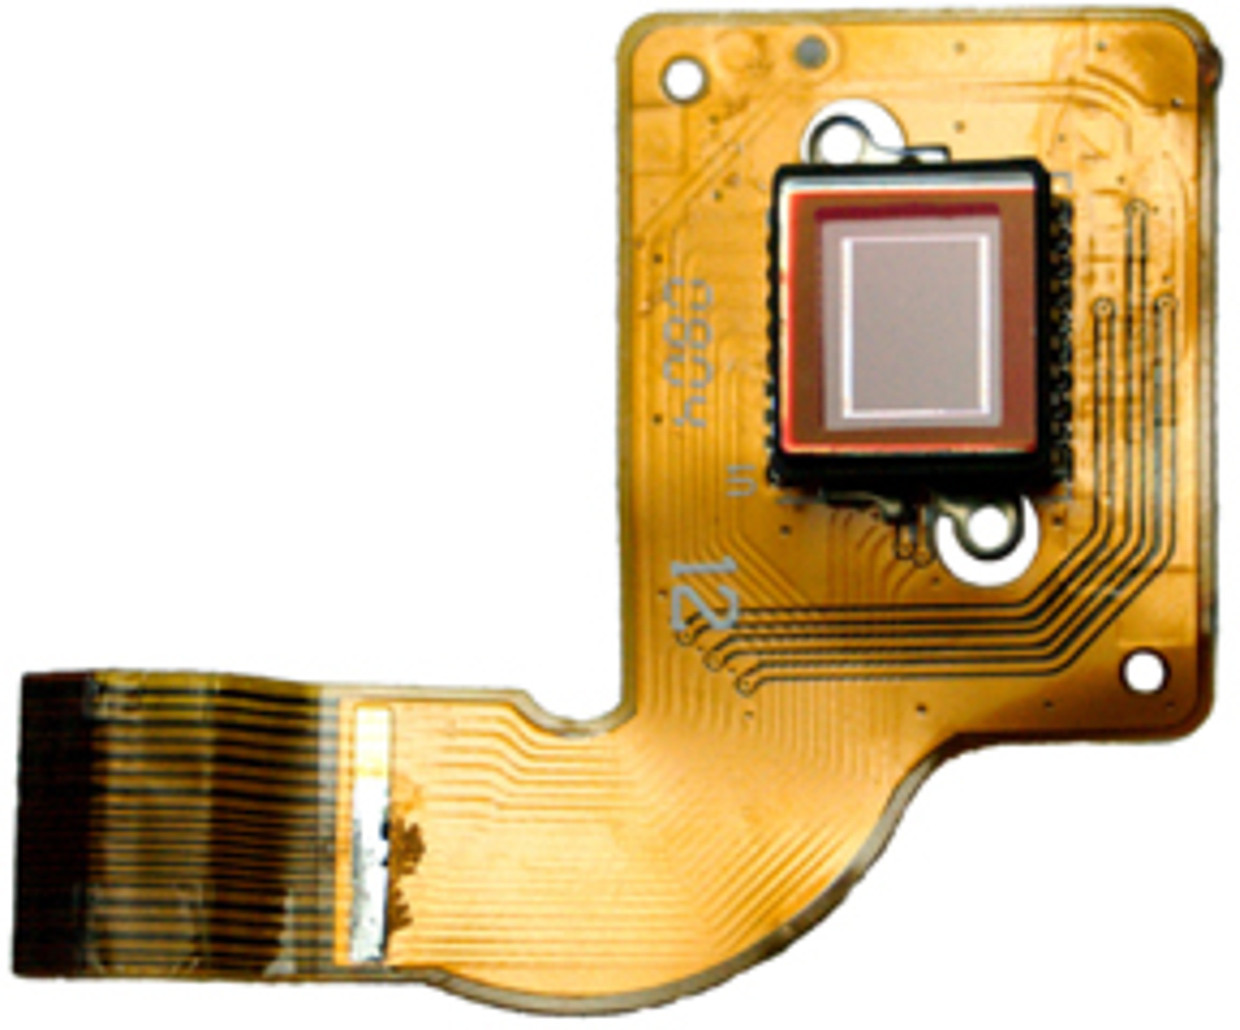 Detail Finetech Most Popular Electronic Circuits Of These Inquiries Come From Medical Companies Or Bio Researchers Exploring Creative Ways To Bond Bare Die Flex